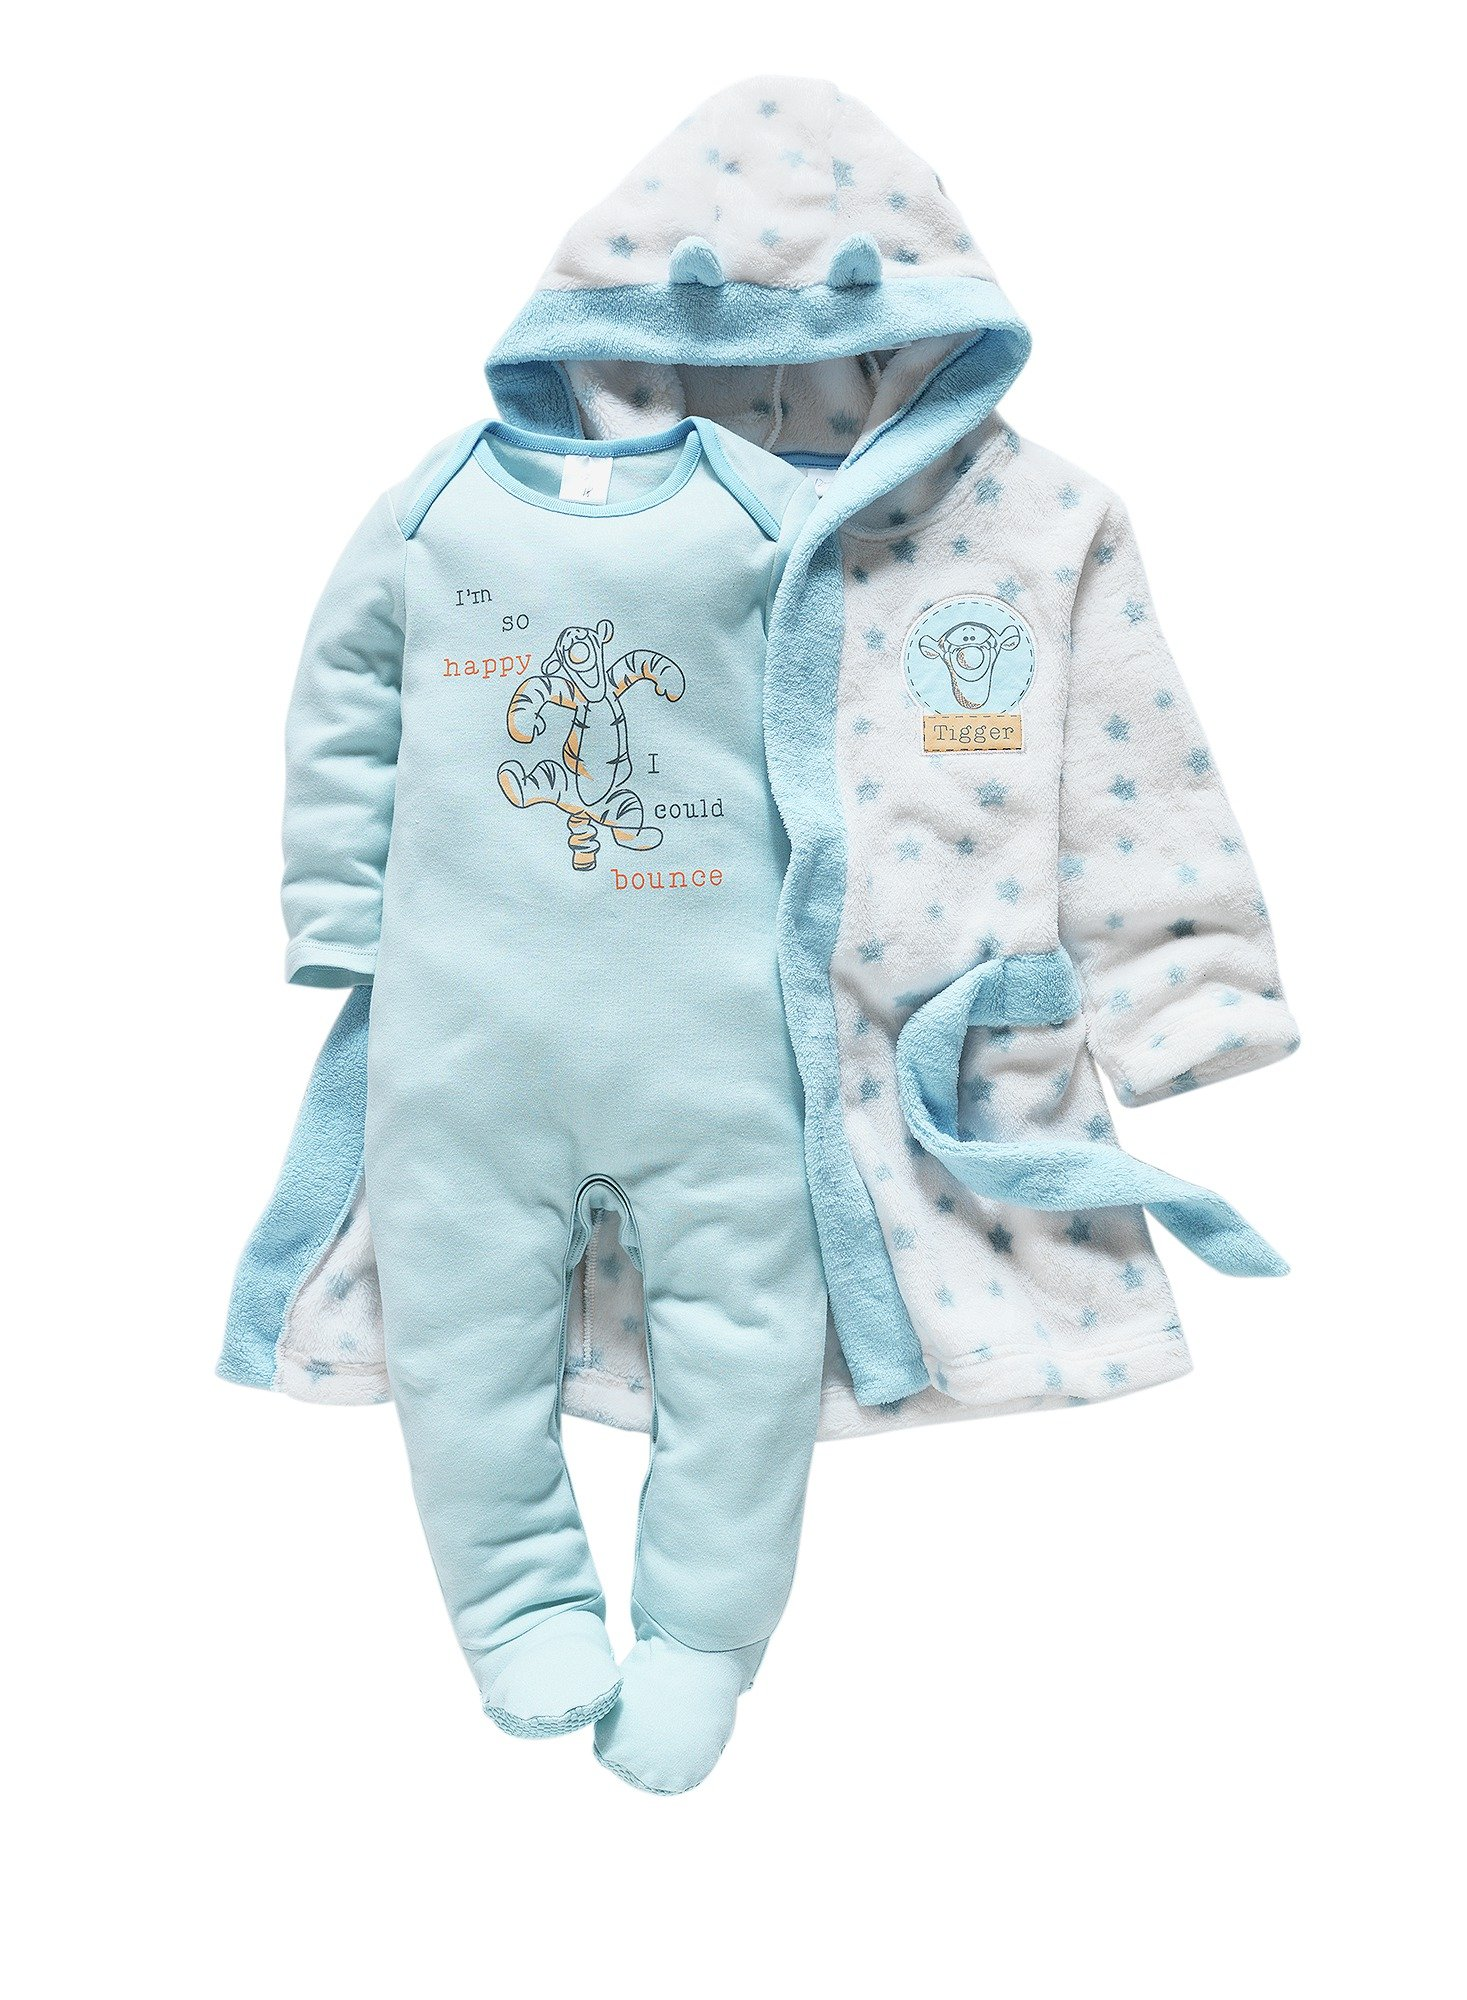 Image of Disney - Tigger - Sleepsuit & Fleece Robe Set - 18-24 Months